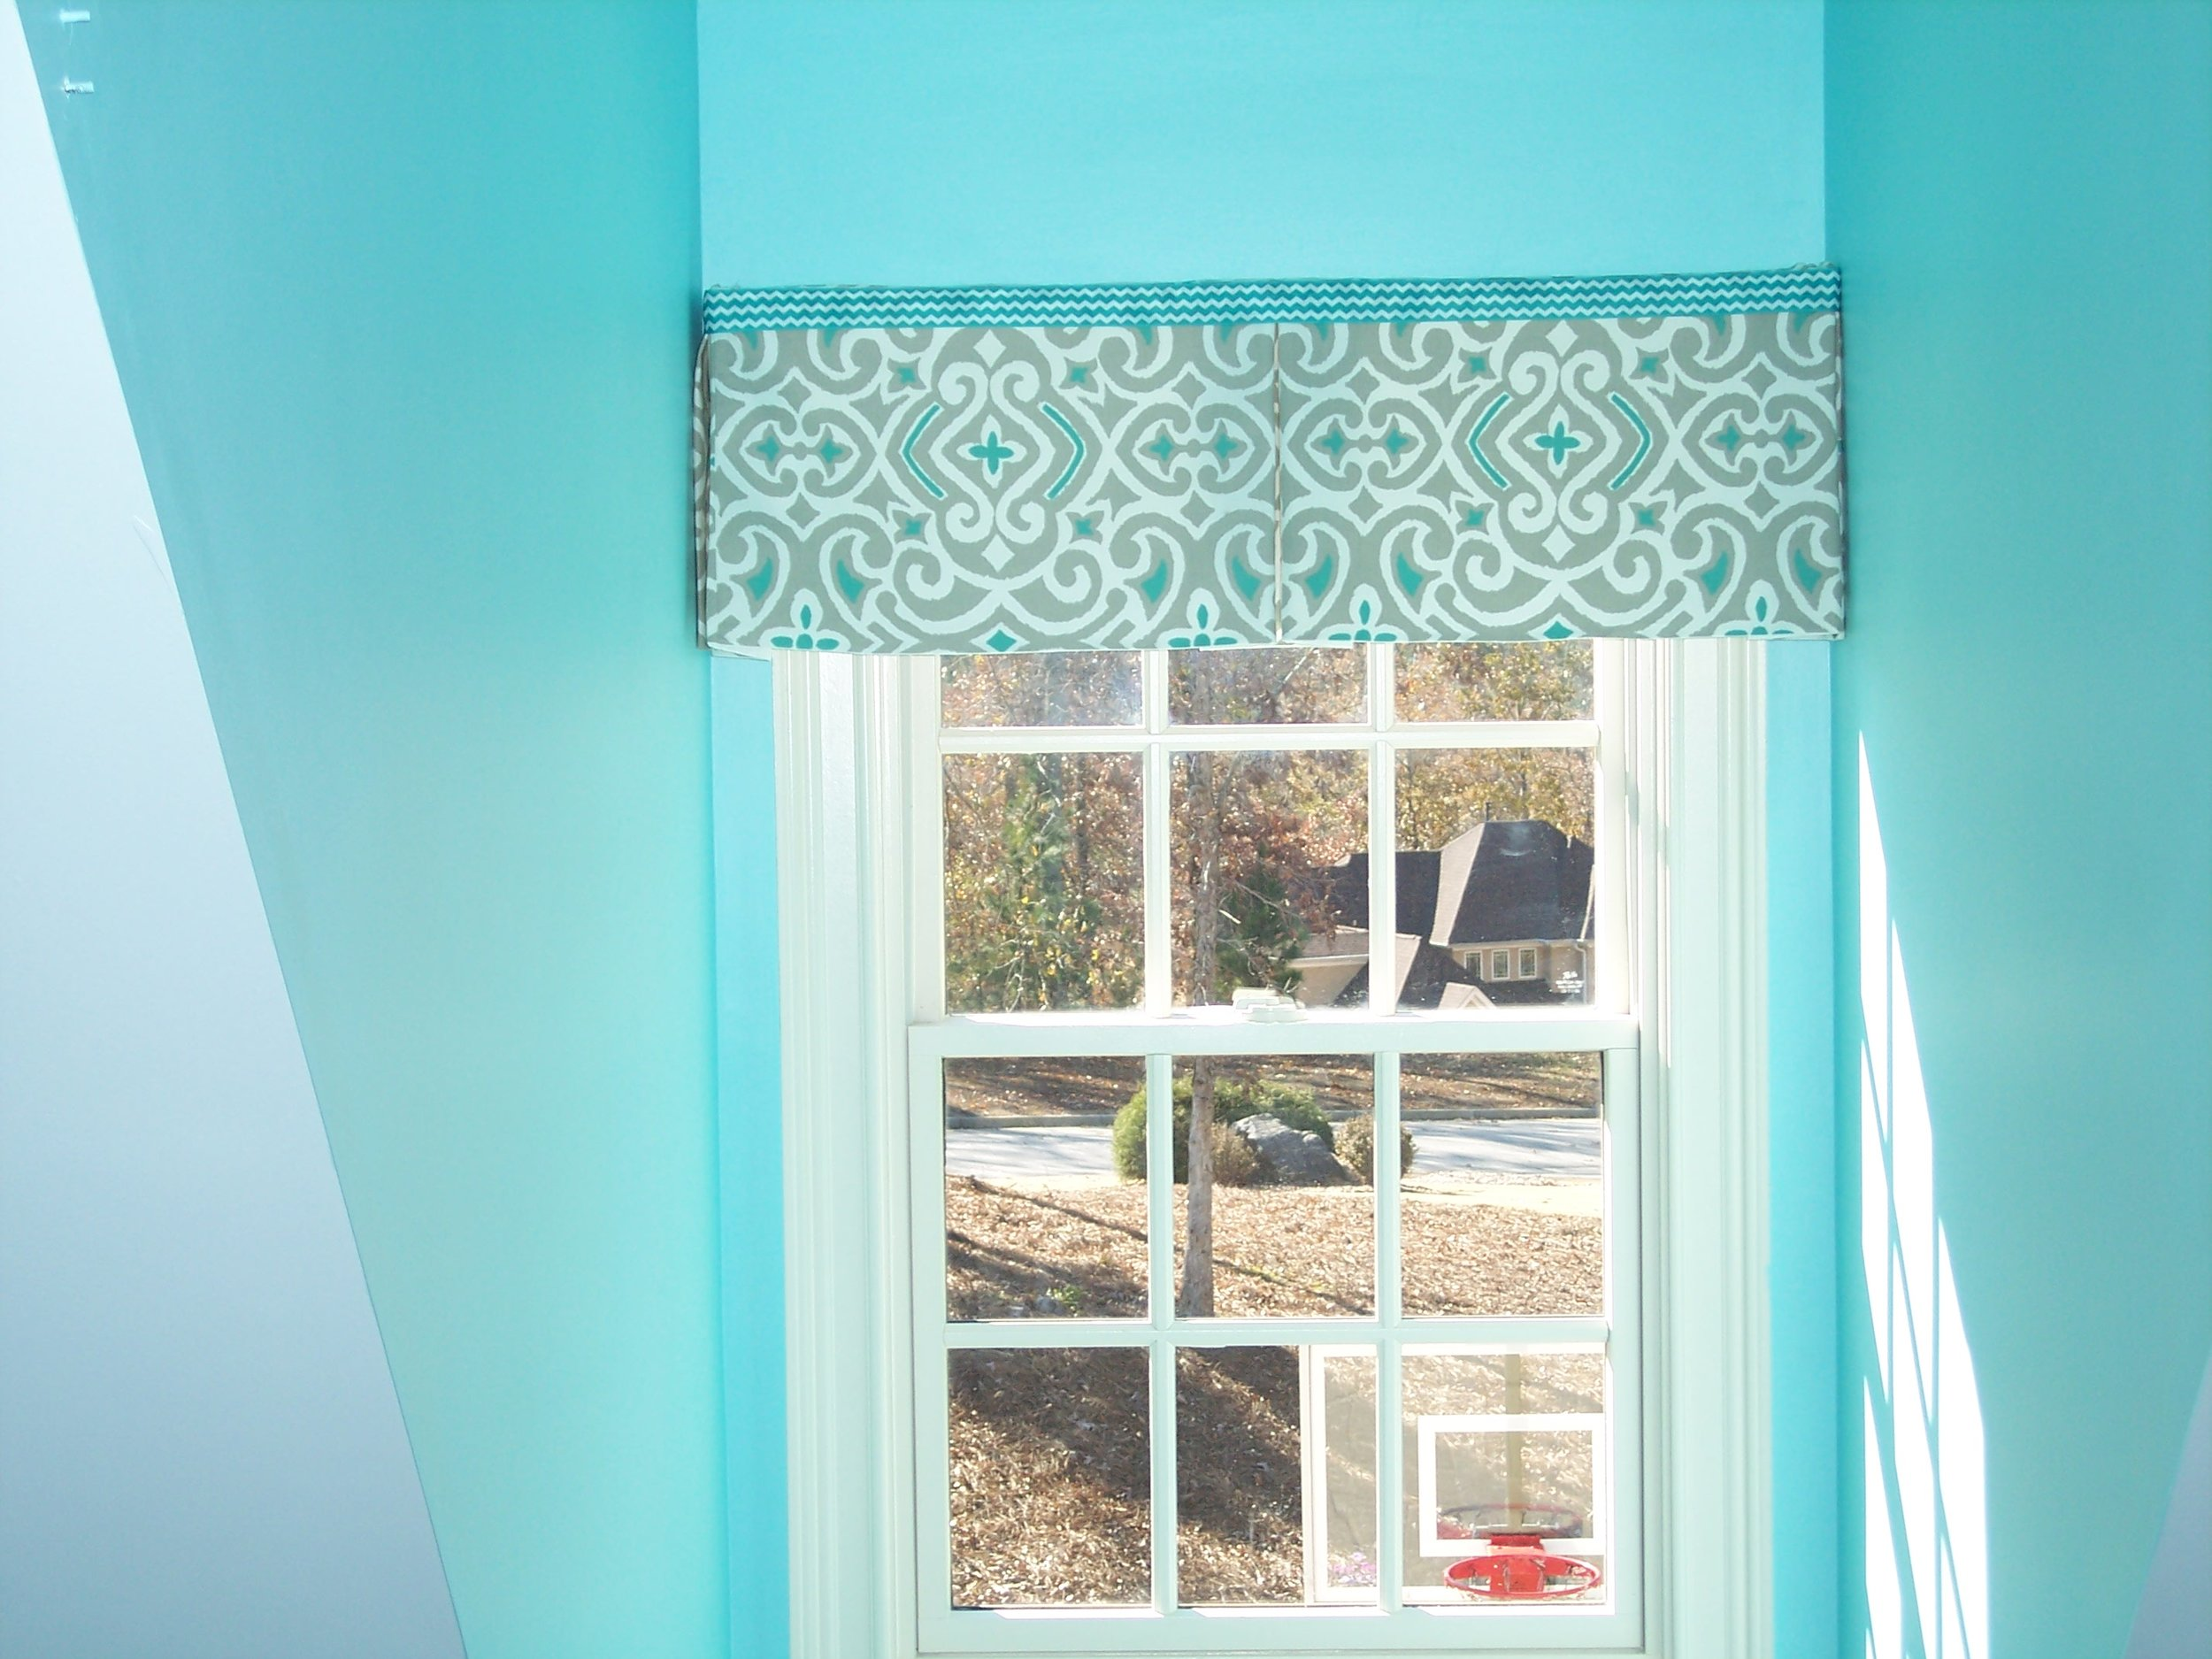 This box pleated valence is the perfect window treatment for this dormer window. Photo courtesy of BK Designs.